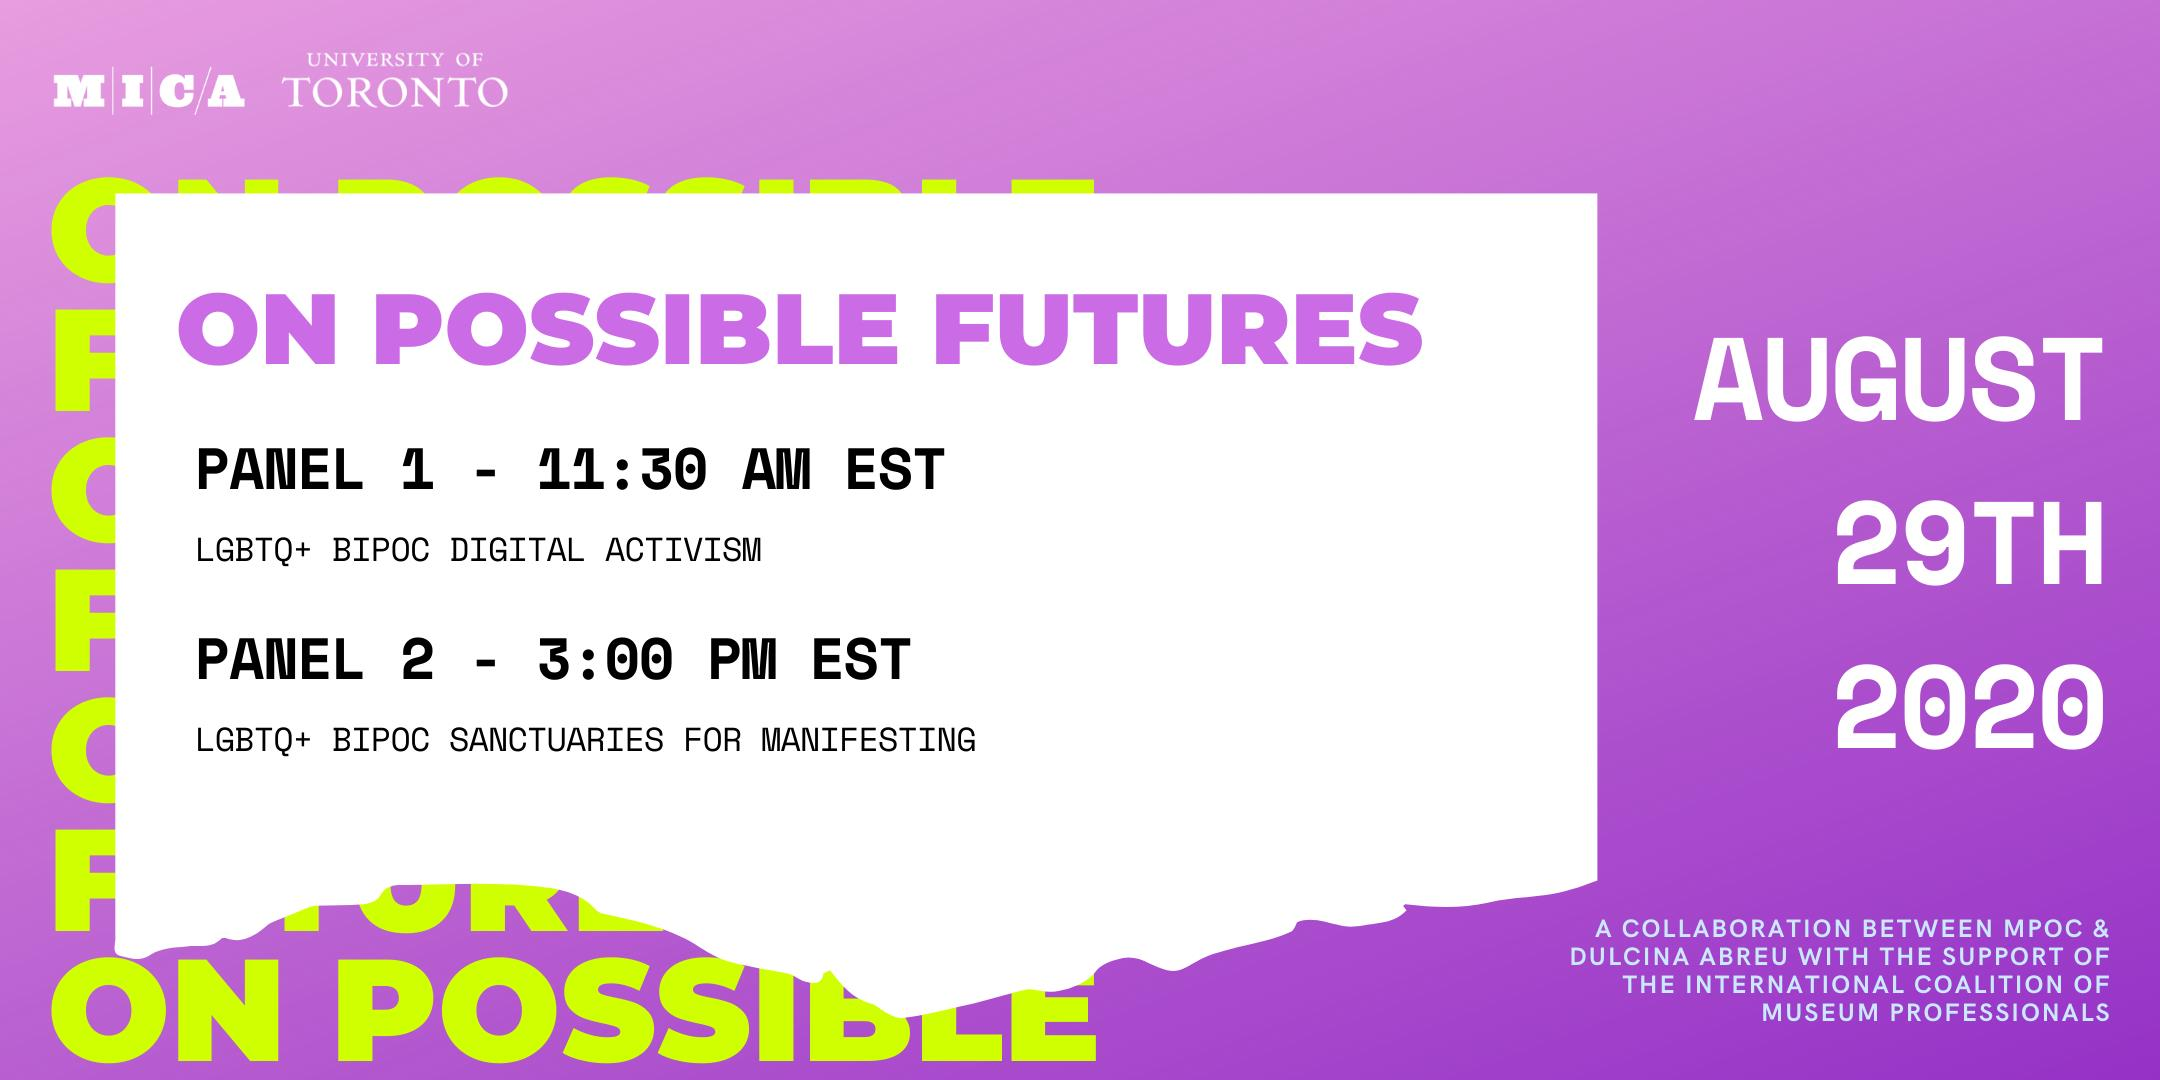 On Possible Futures